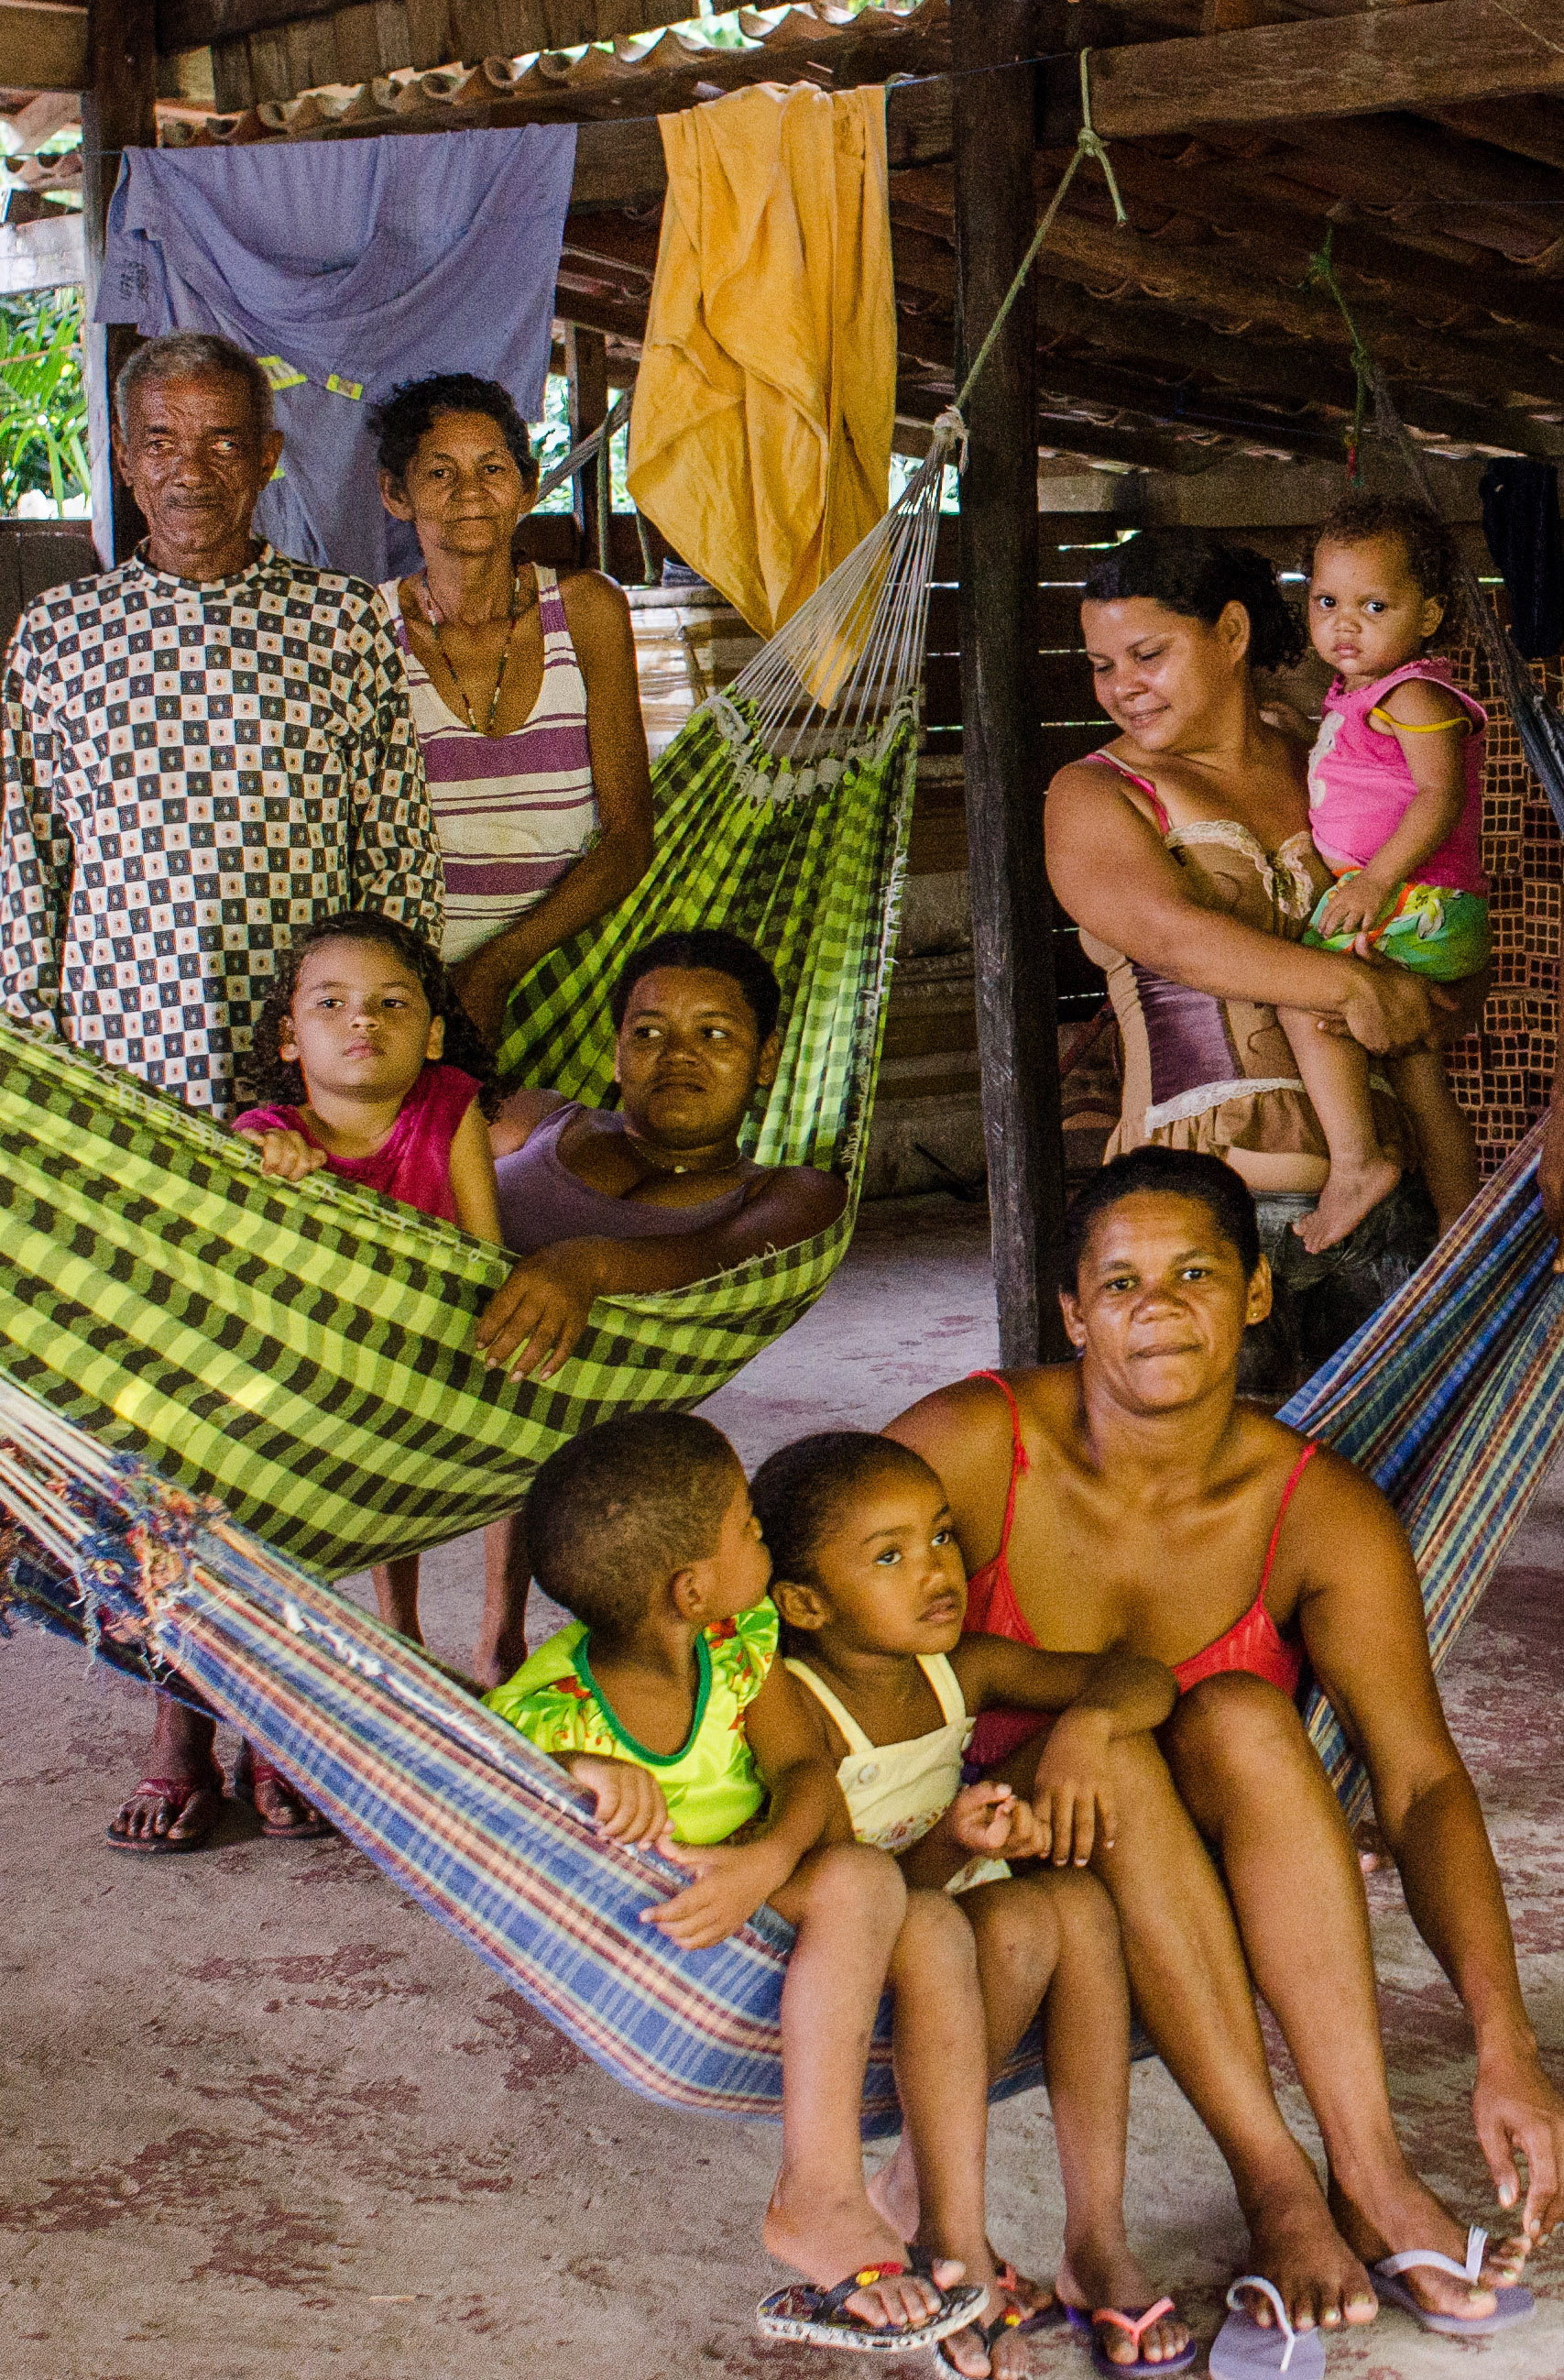 A handful of the family members who live with Uncle Black and Neuze. These are the hammocks they string up at night to sleep in, or lounge in during the day.